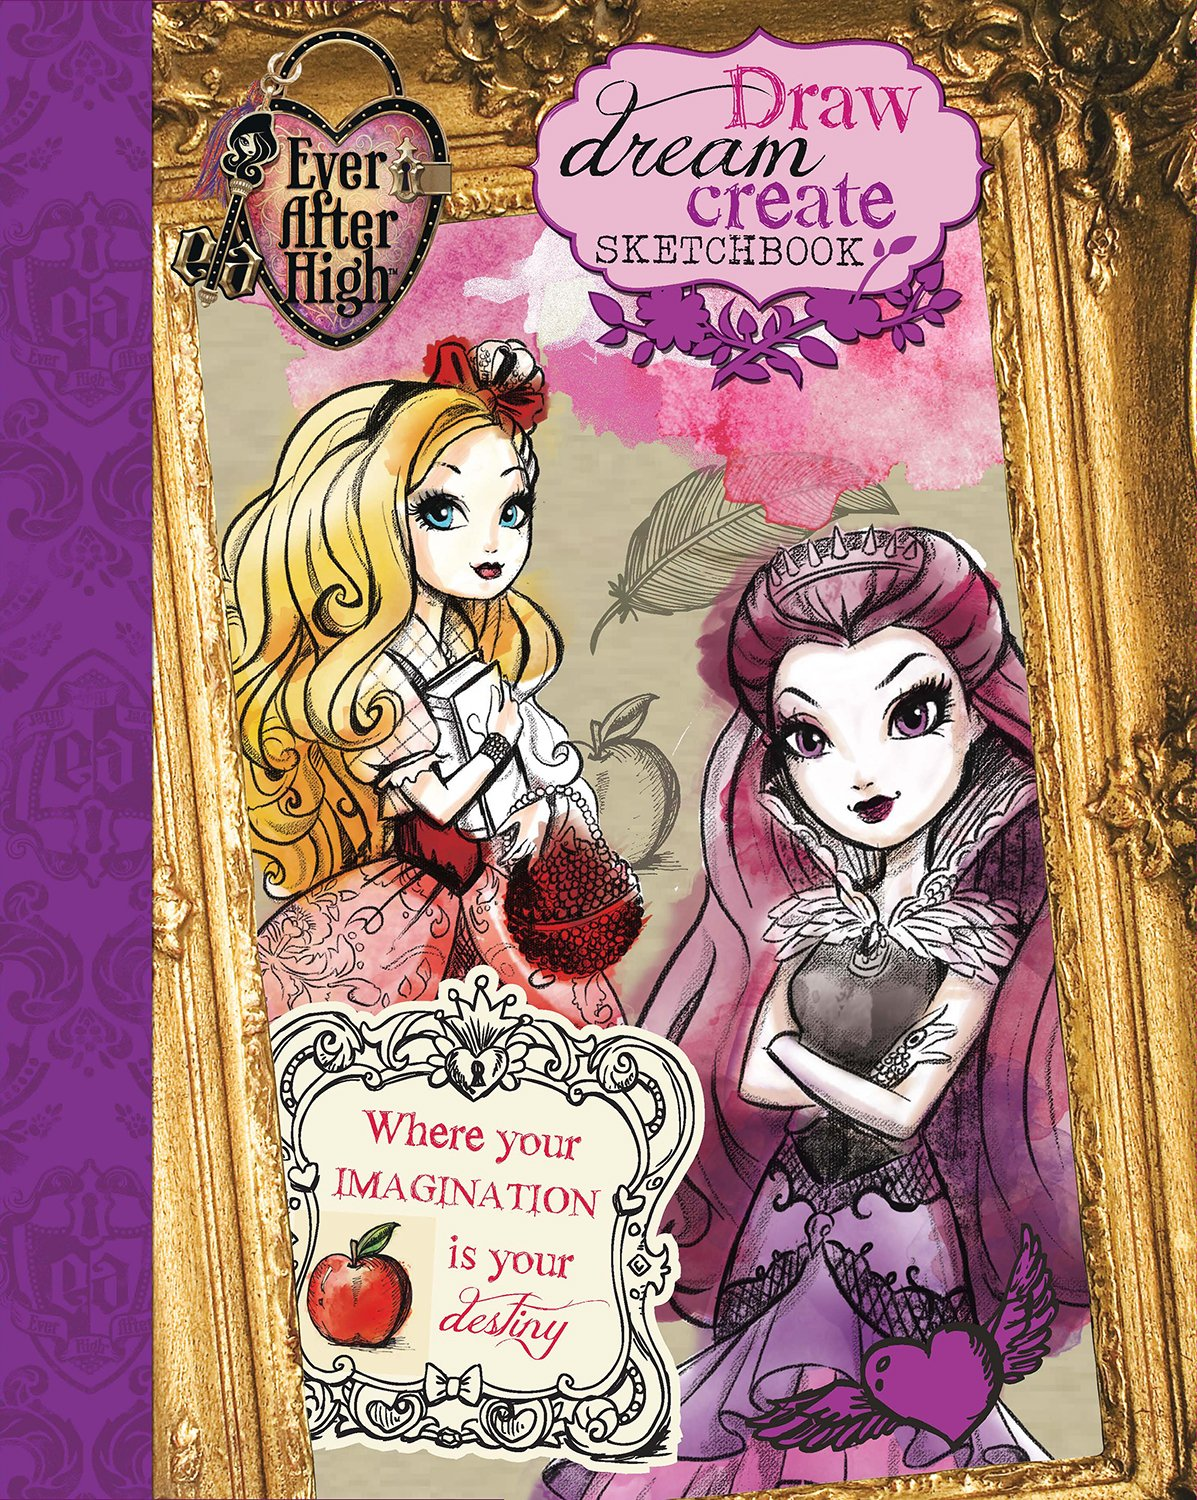 Ever After High Draw, Dream, Create Sketchbook PDF